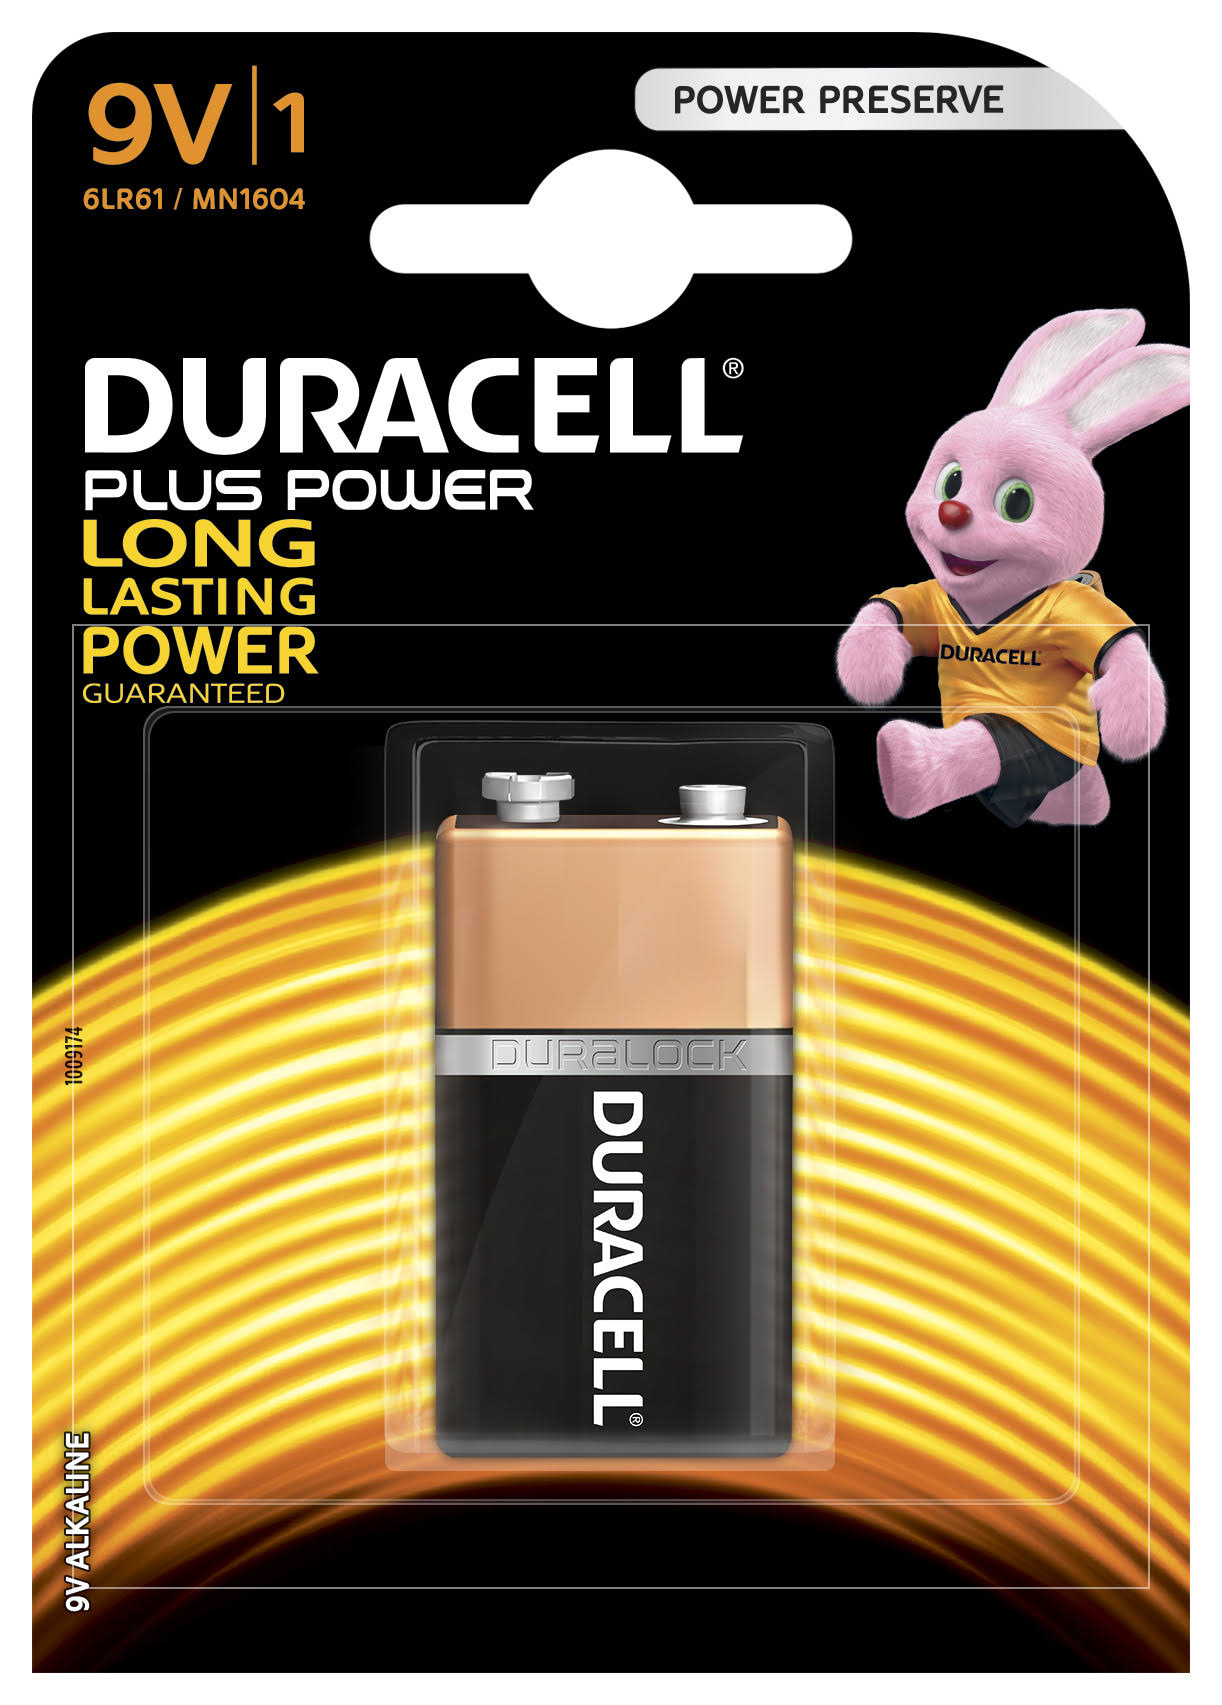 Duracell Plus Power Type Alkaline Battery - 9V